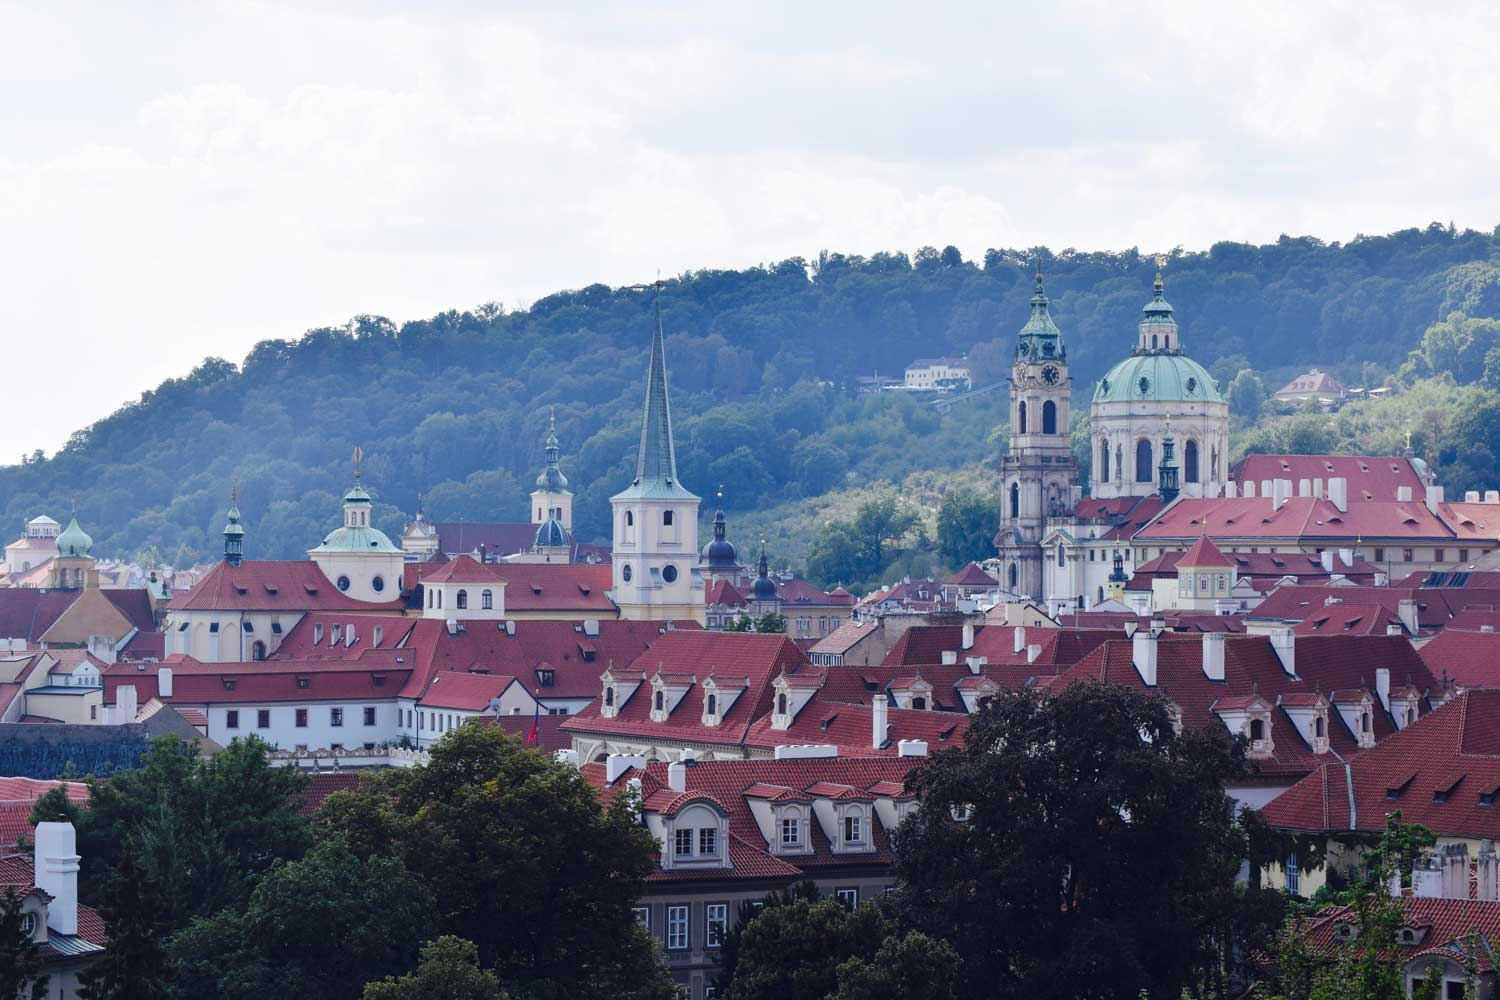 Great view from the ramparts of Castle Prague.